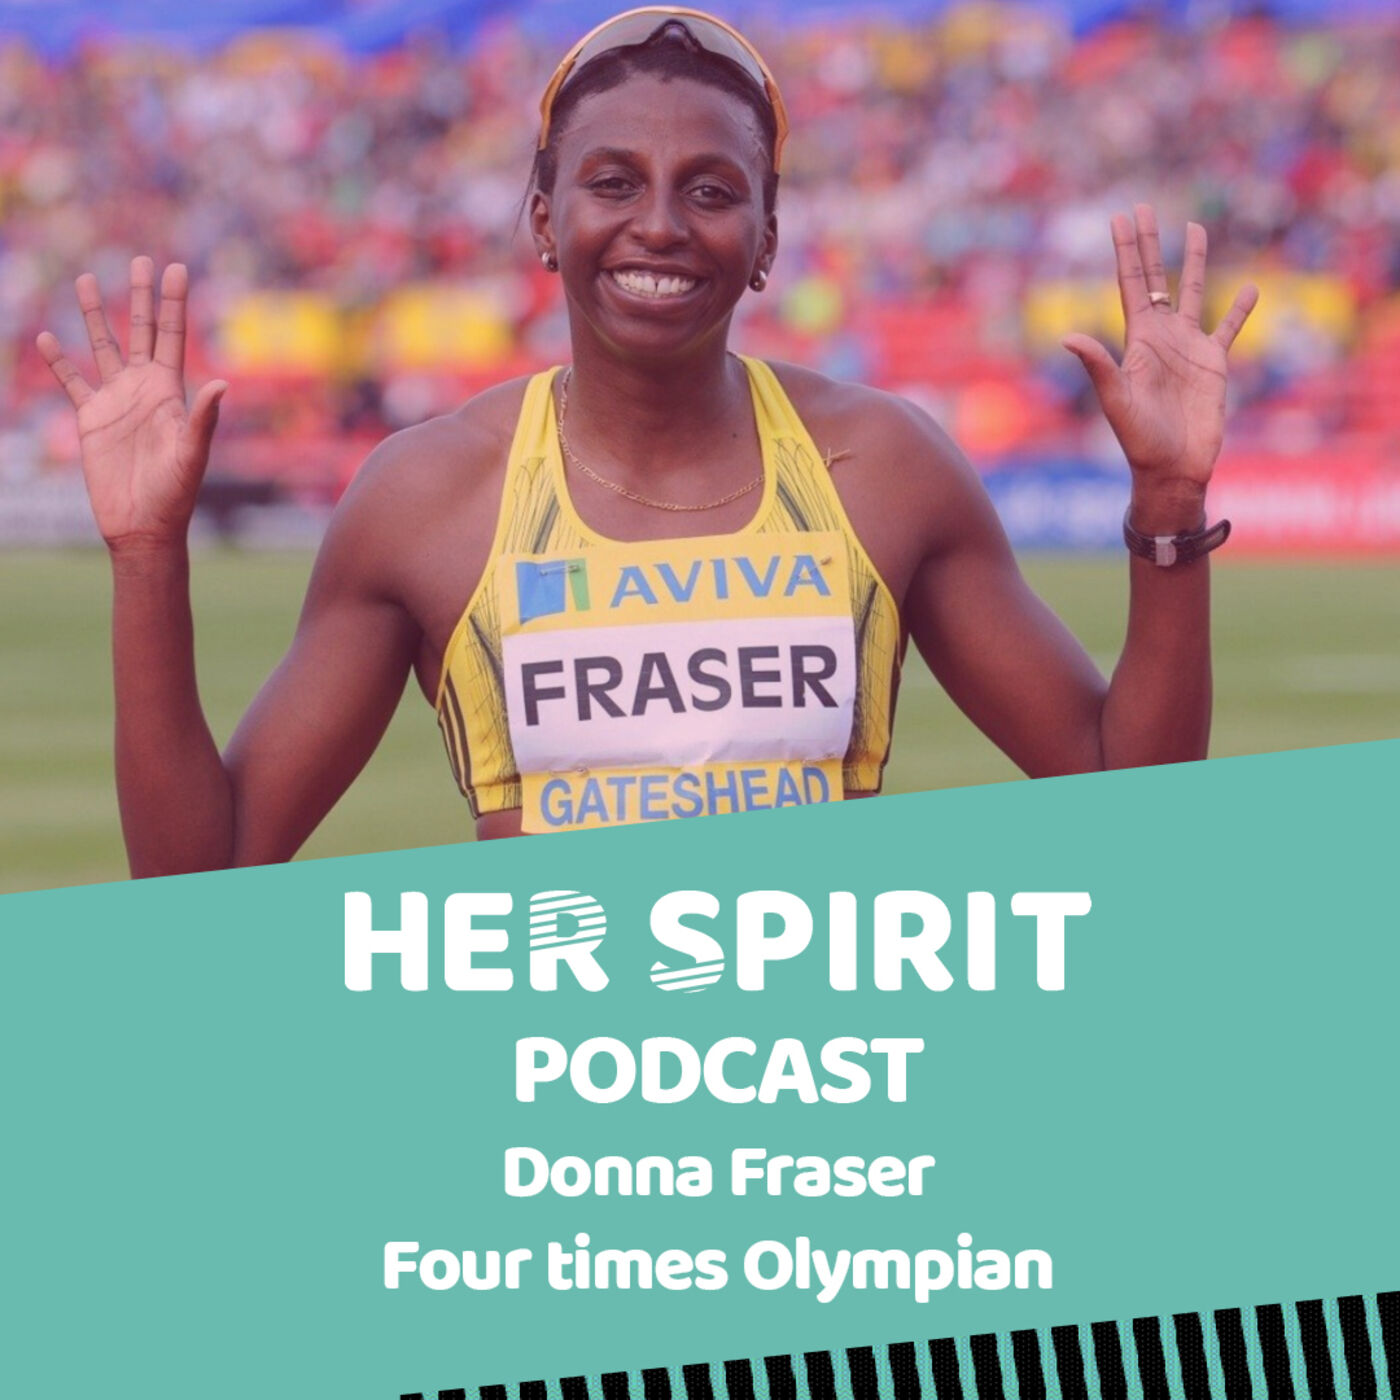 Four time Olympian Donna Fraser talks to Louise and Annie about her career in athletics and her fight with breast cancer in 2009. Three years later she qualified for her fourth Olympics in London.